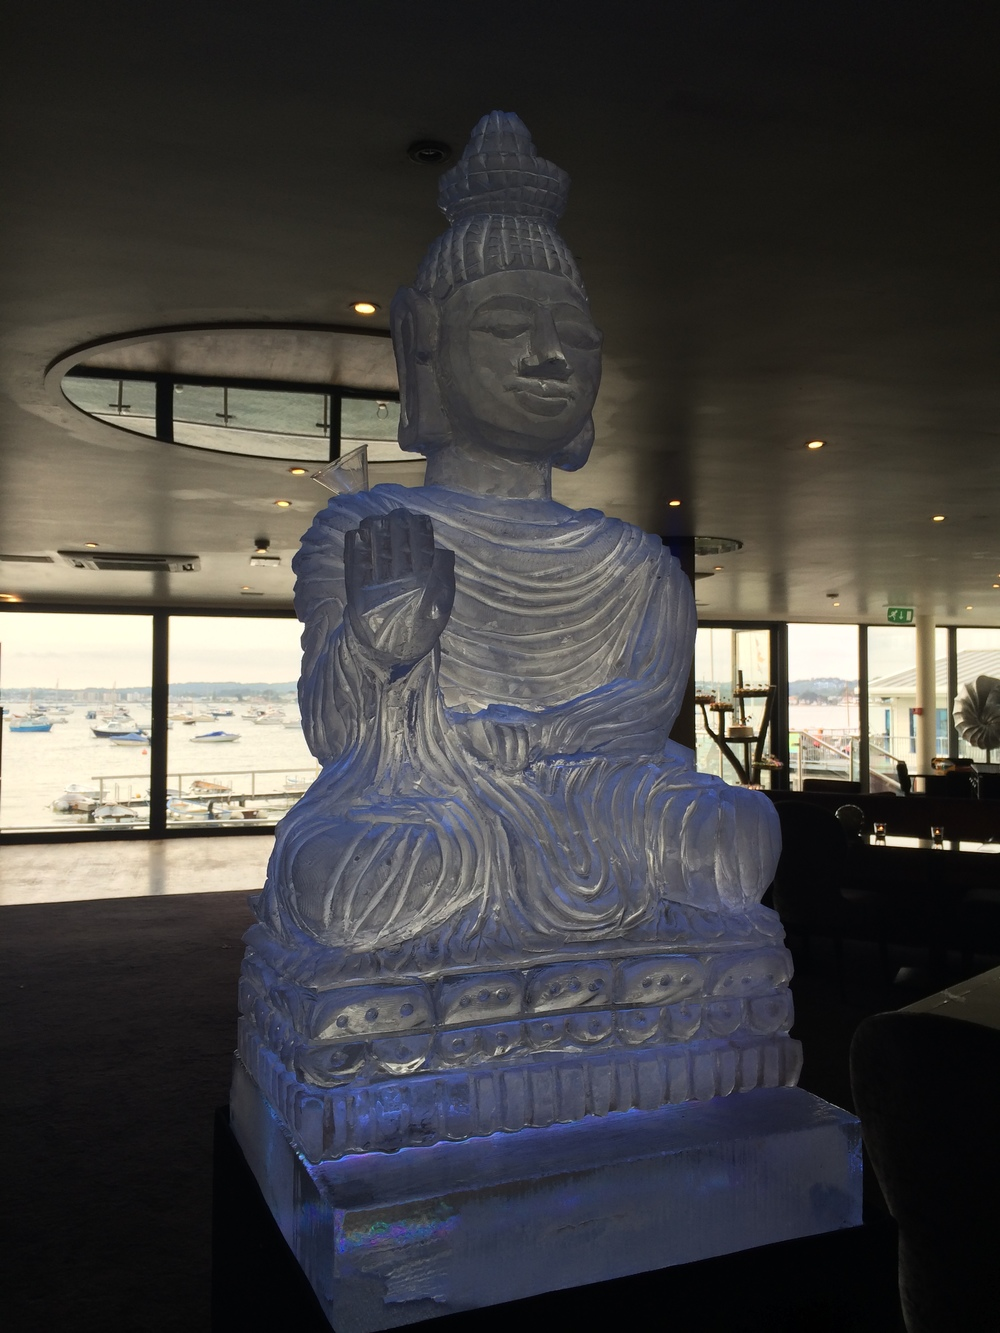 Buddah - Cool As Ice (Vodka Luge)